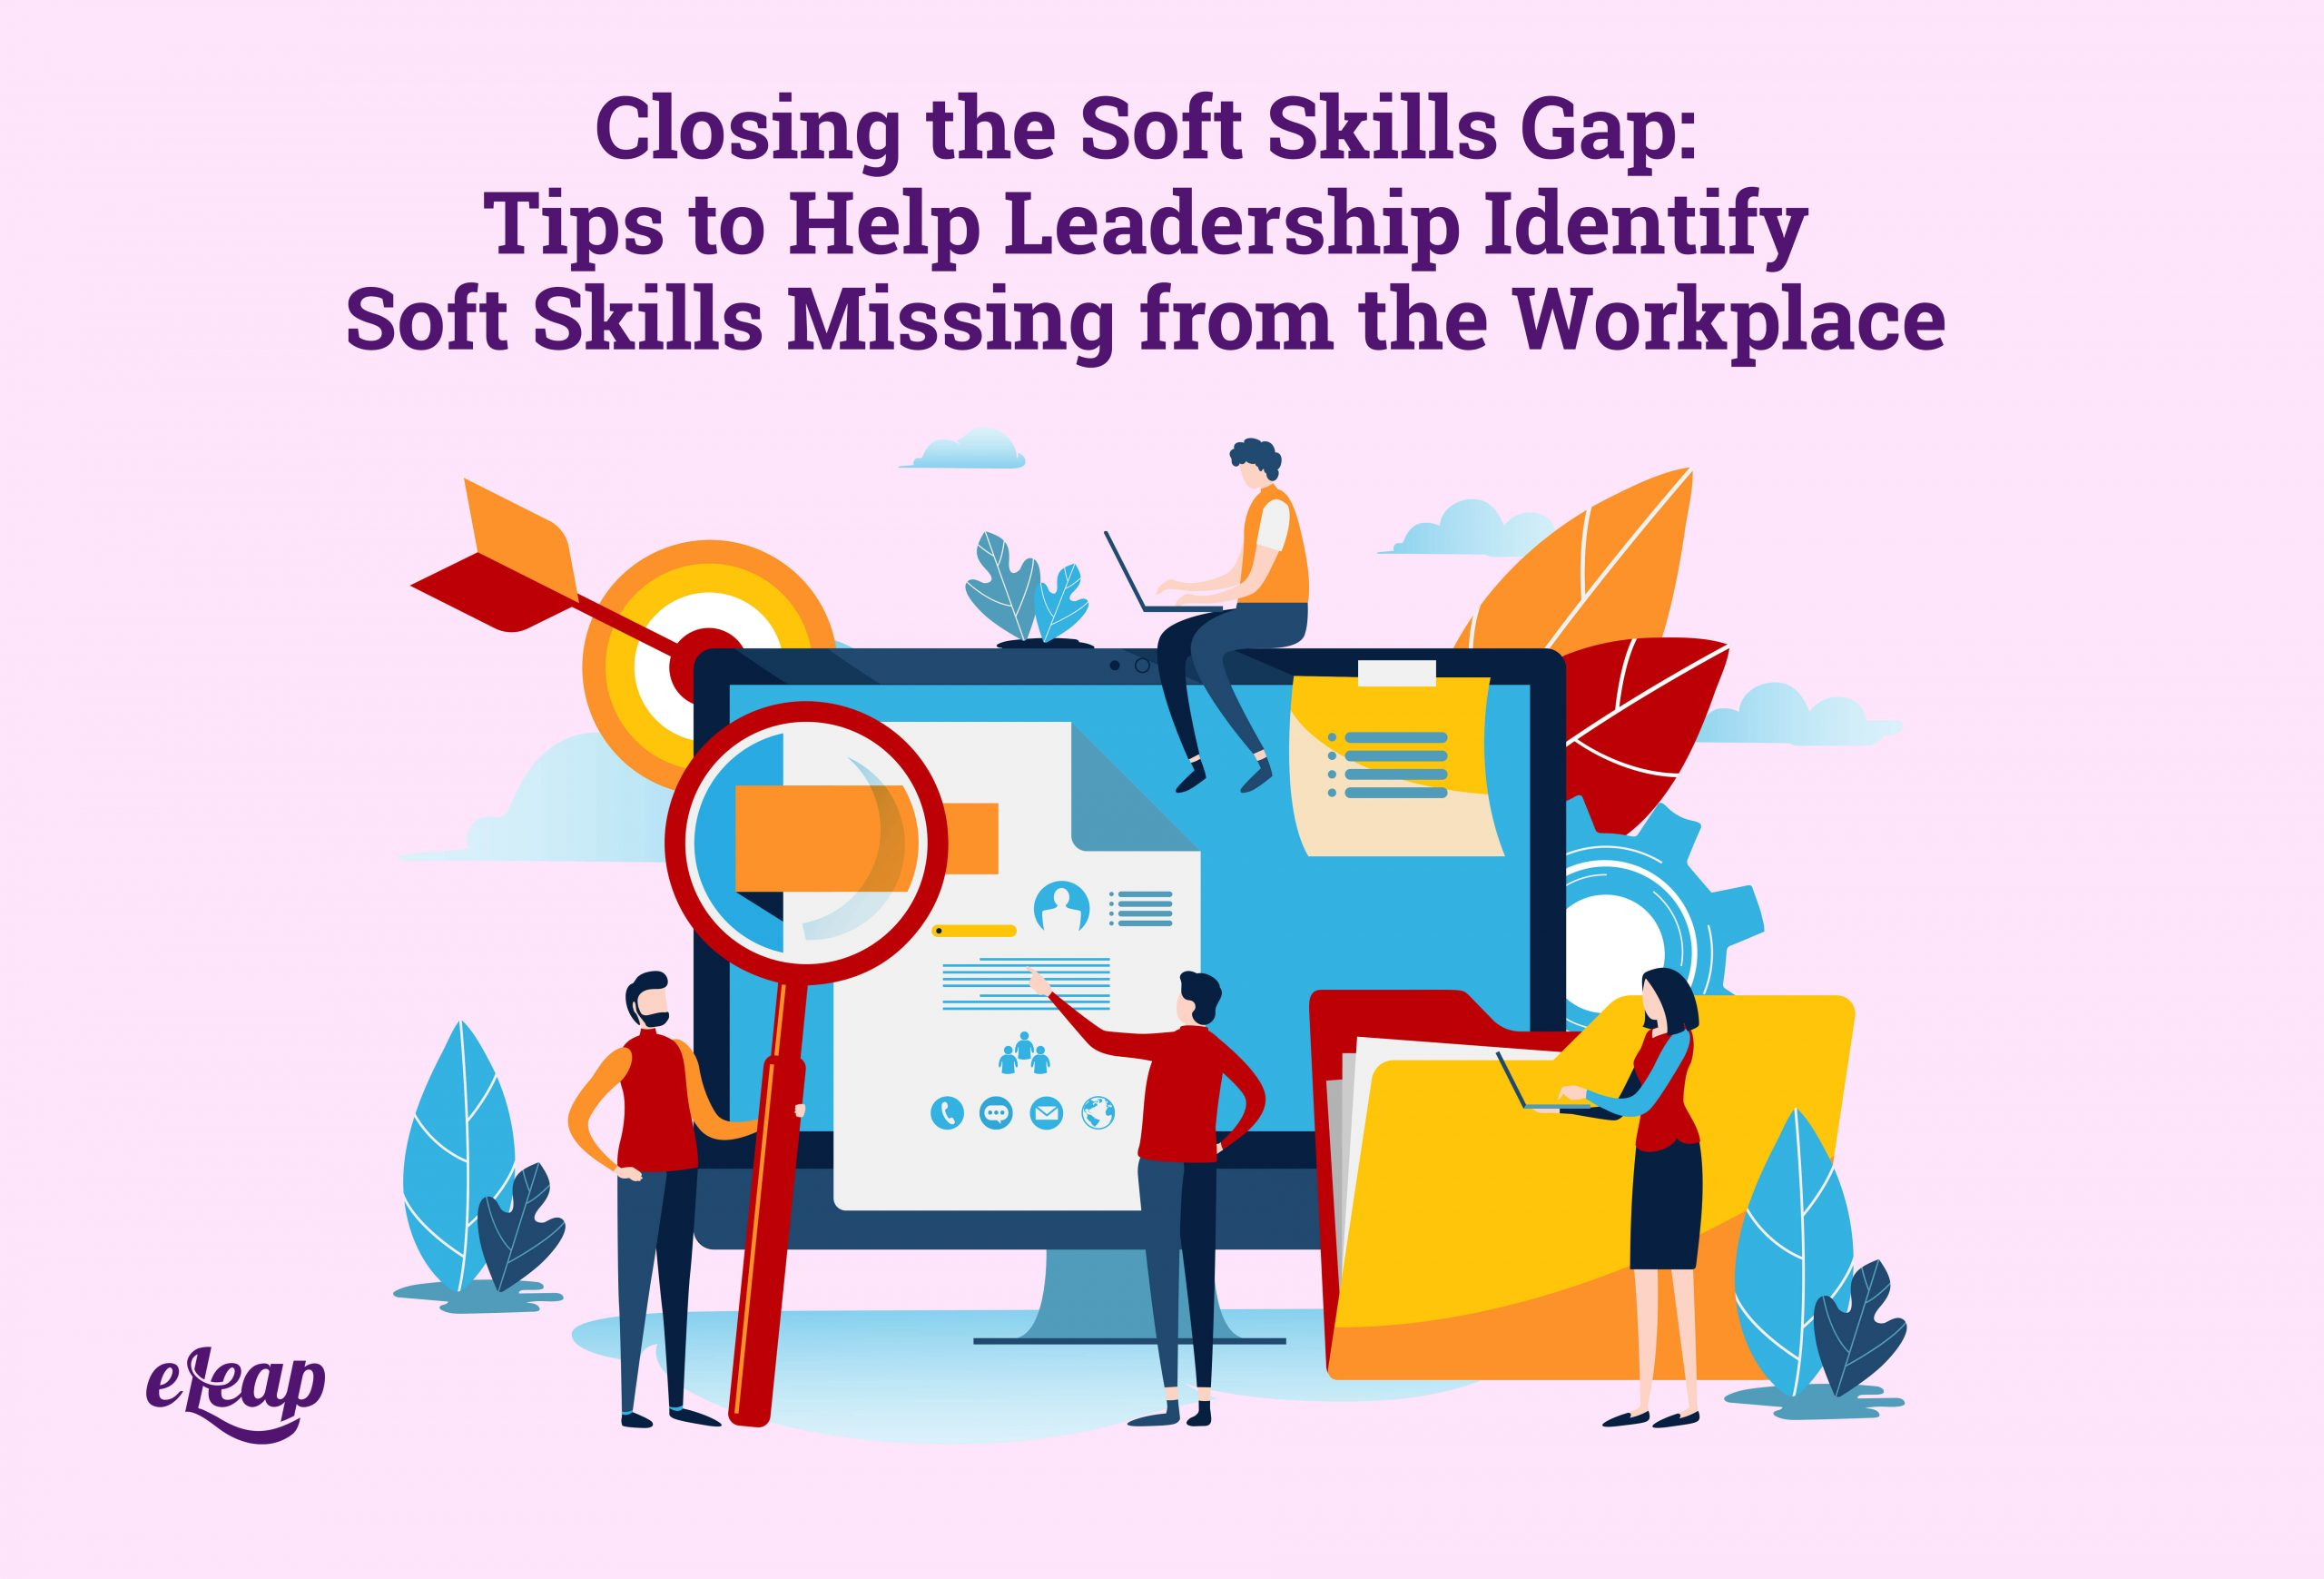 Closing the Soft Skills Gap: Tips to Help Leadership Identify Soft Skills Missing from the Workplace